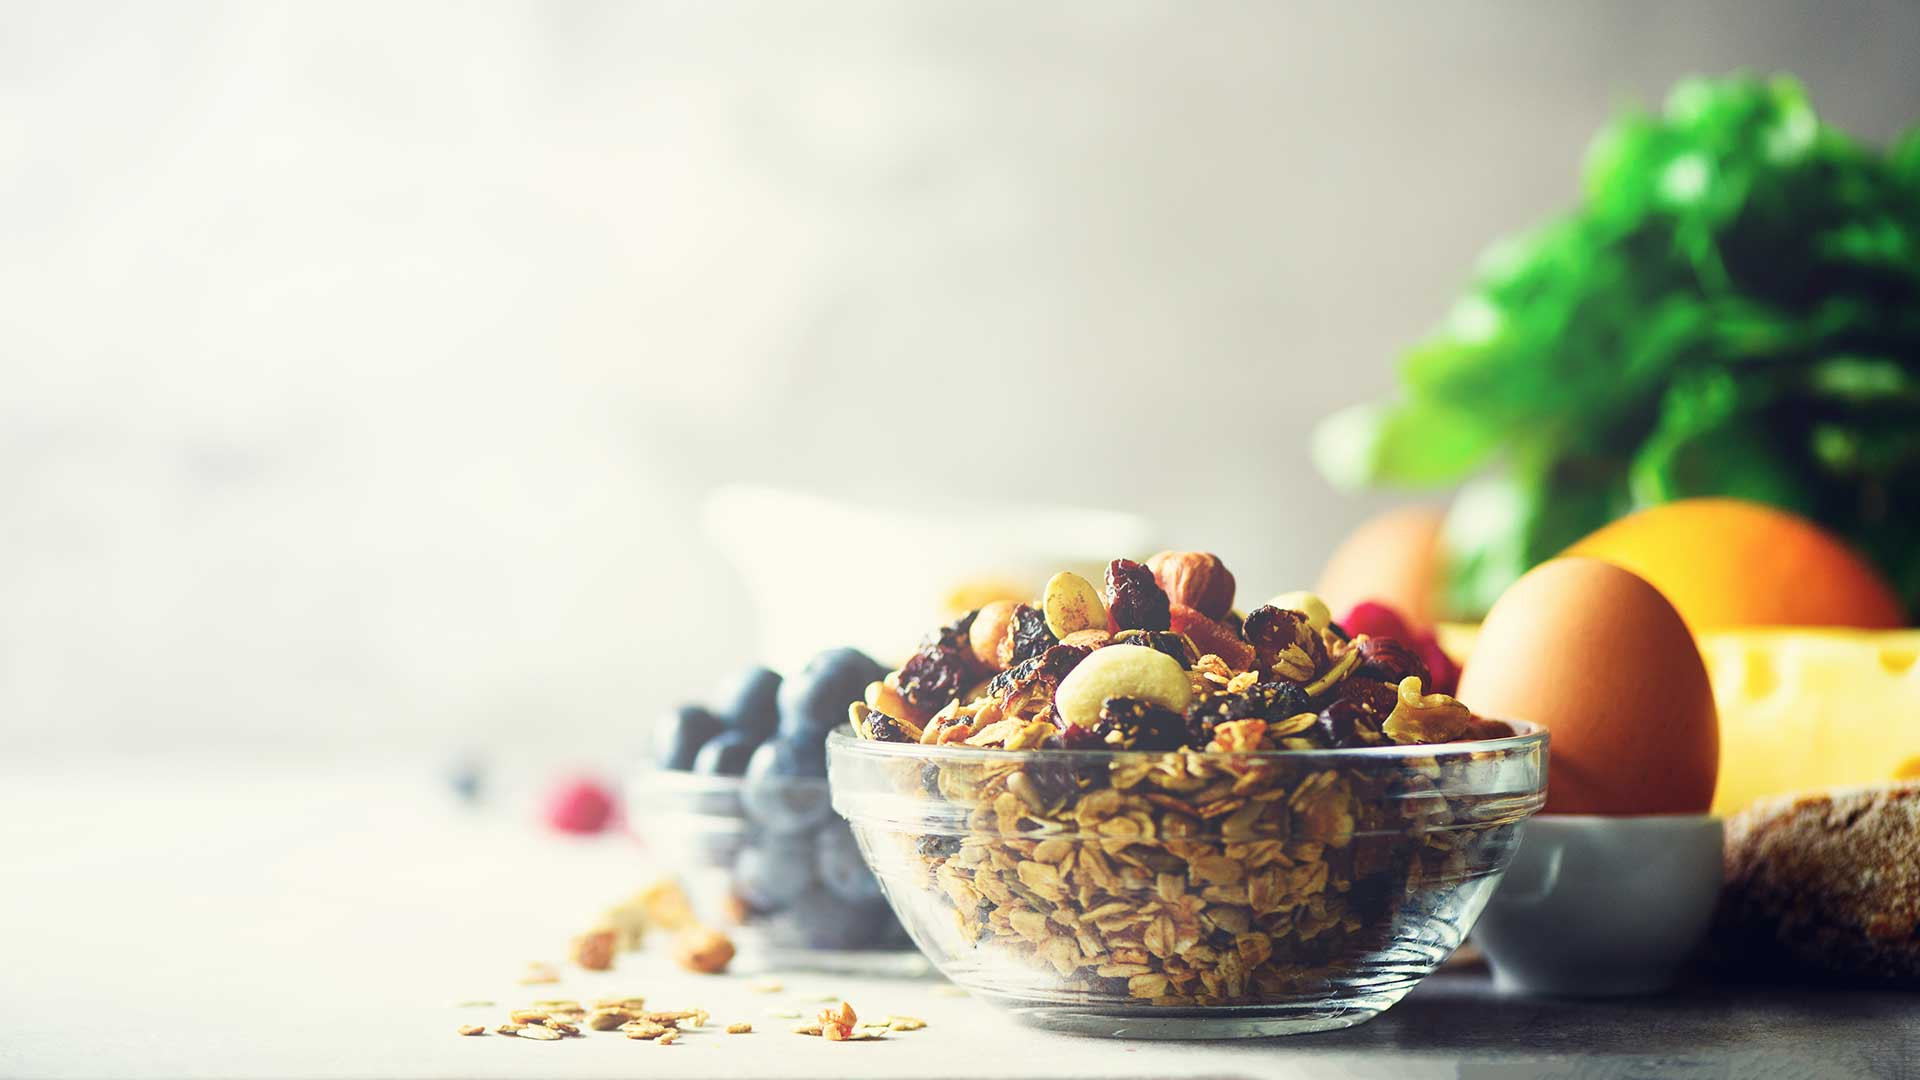 Organic ingredients for healthy lunch - berries, milk, egg, oatmeal on grey concrete background